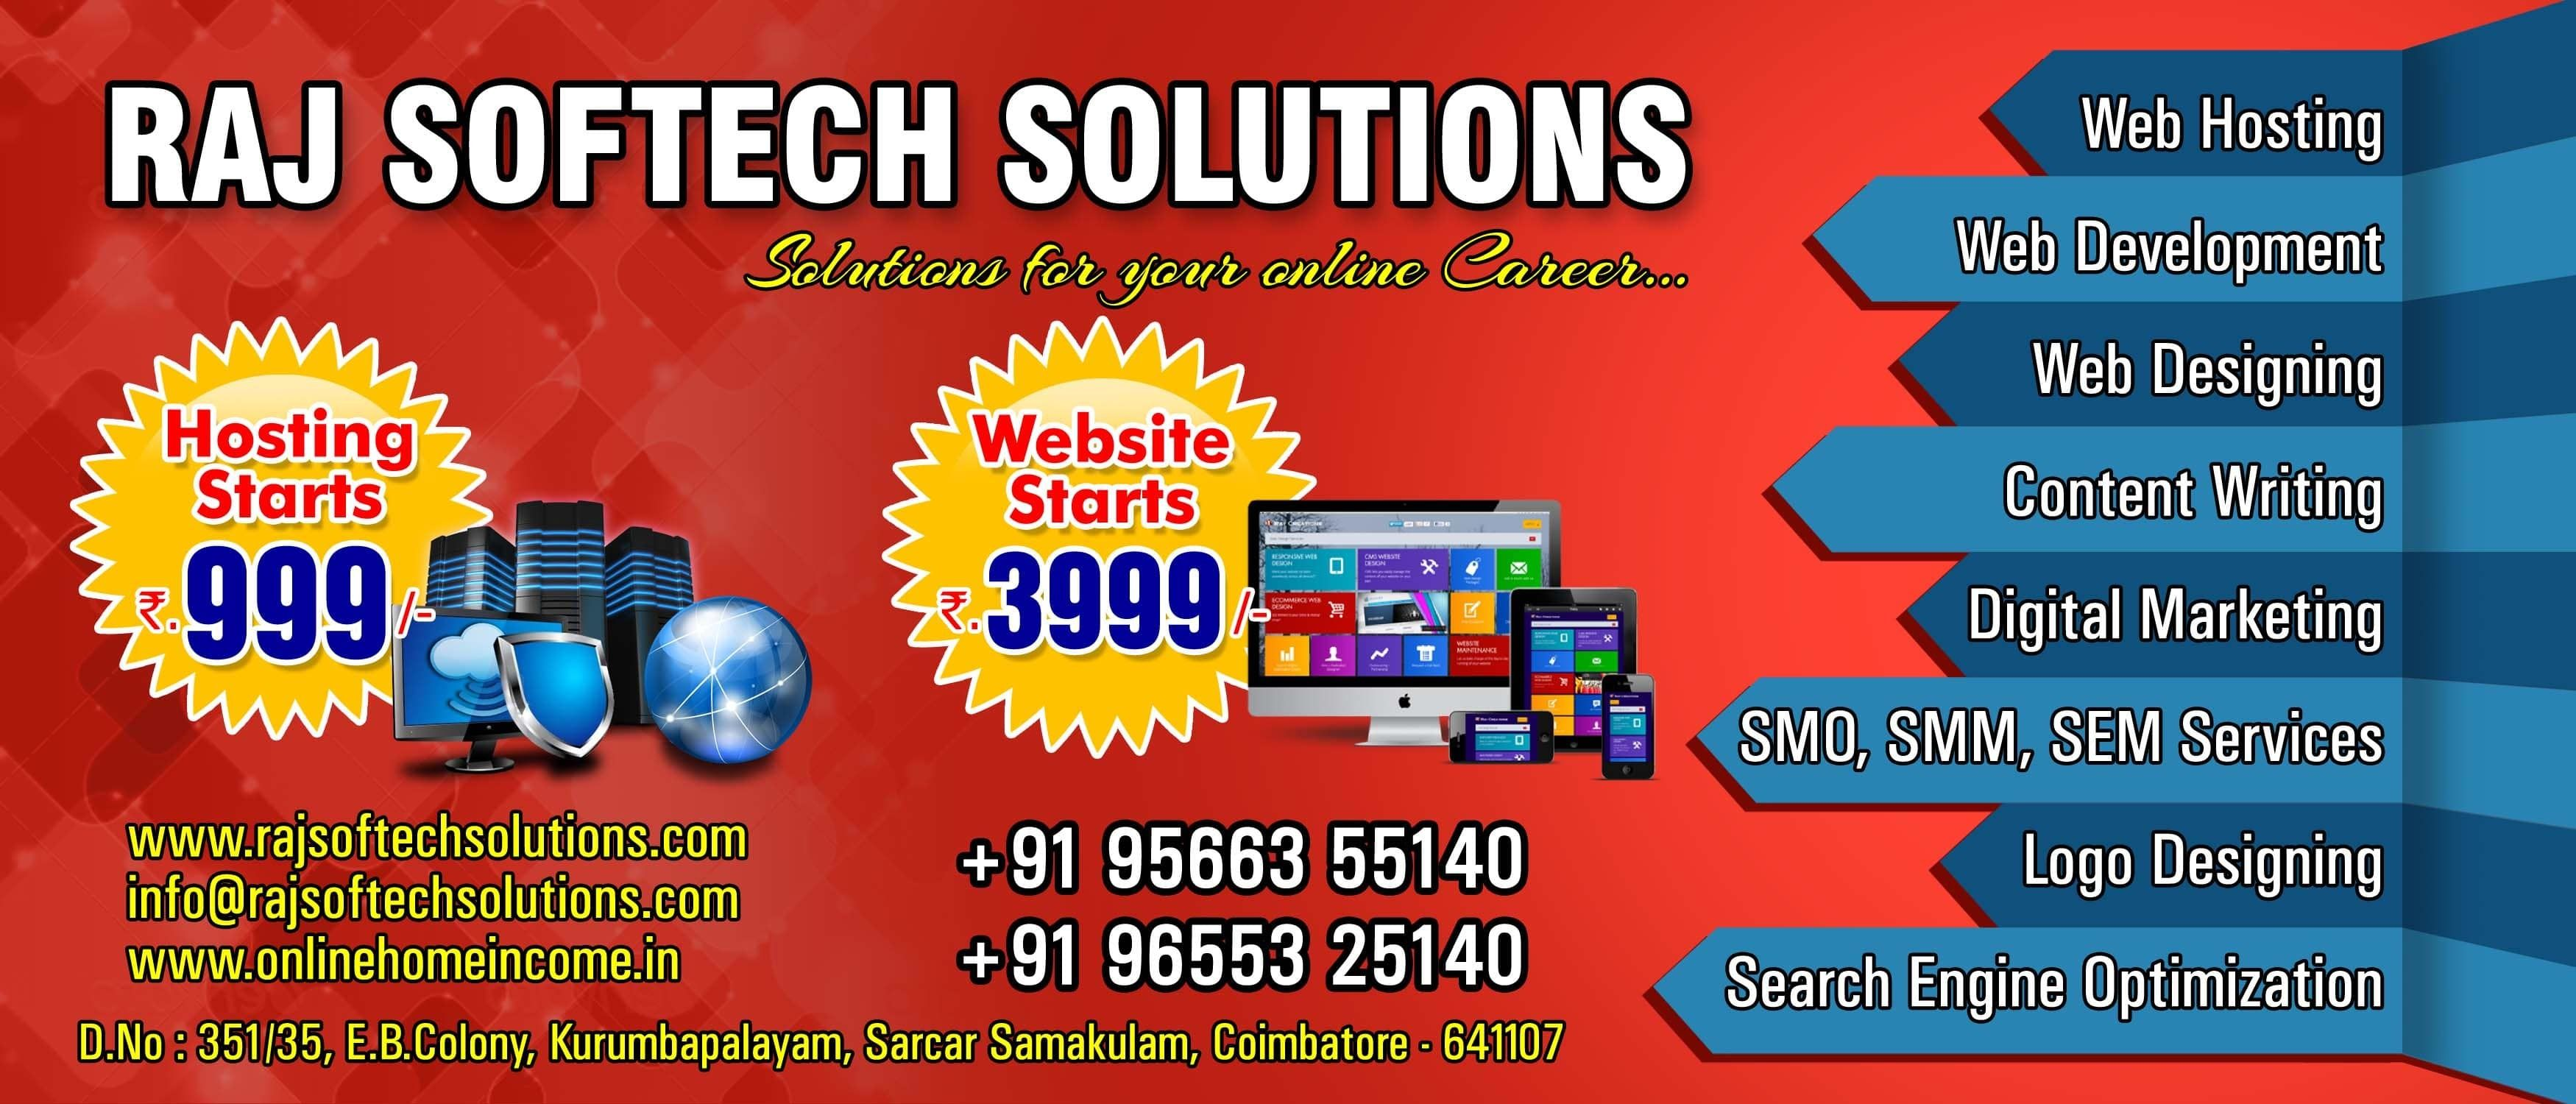 We Are A Digital Marketing Company Based At Coimbatore Https Www Rajsoftechsolut Top Digital Marketing Companies Digital Marketing Digital Marketing Company